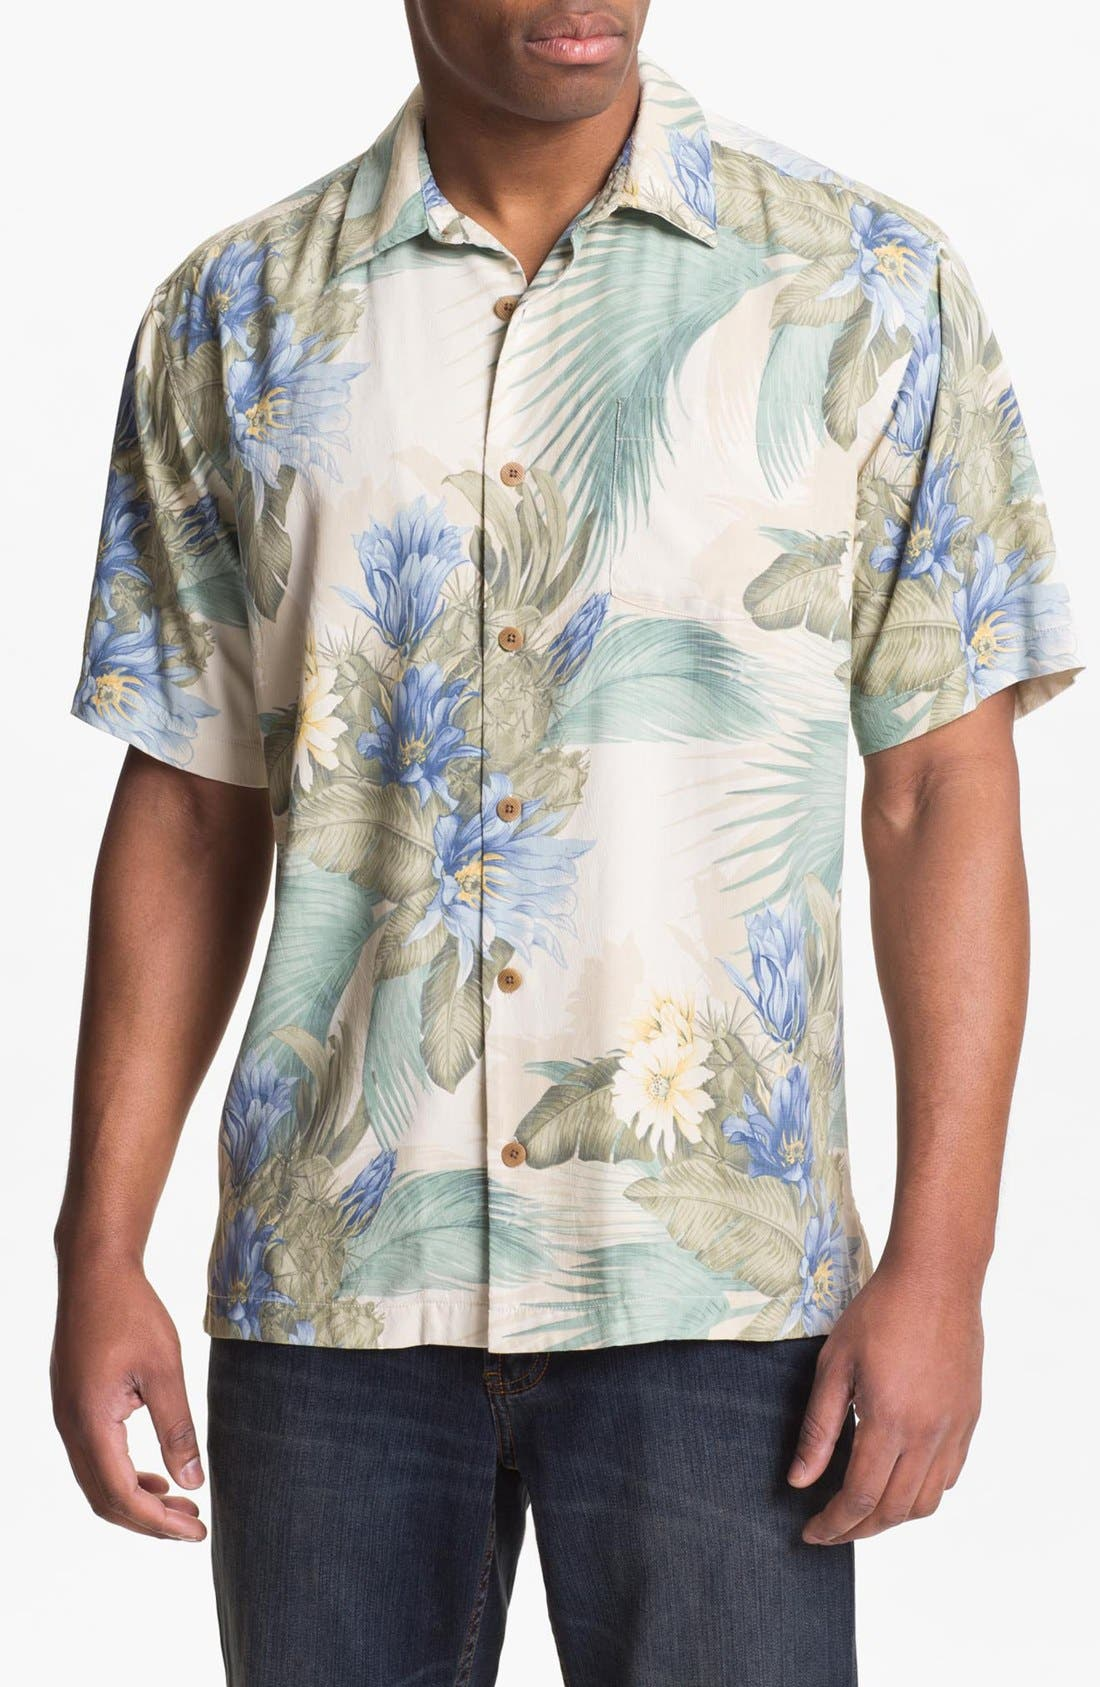 Alternate Image 1 Selected - Tommy Bahama 'Garden of Hope & Courage' Silk Campshirt (Big & Tall)